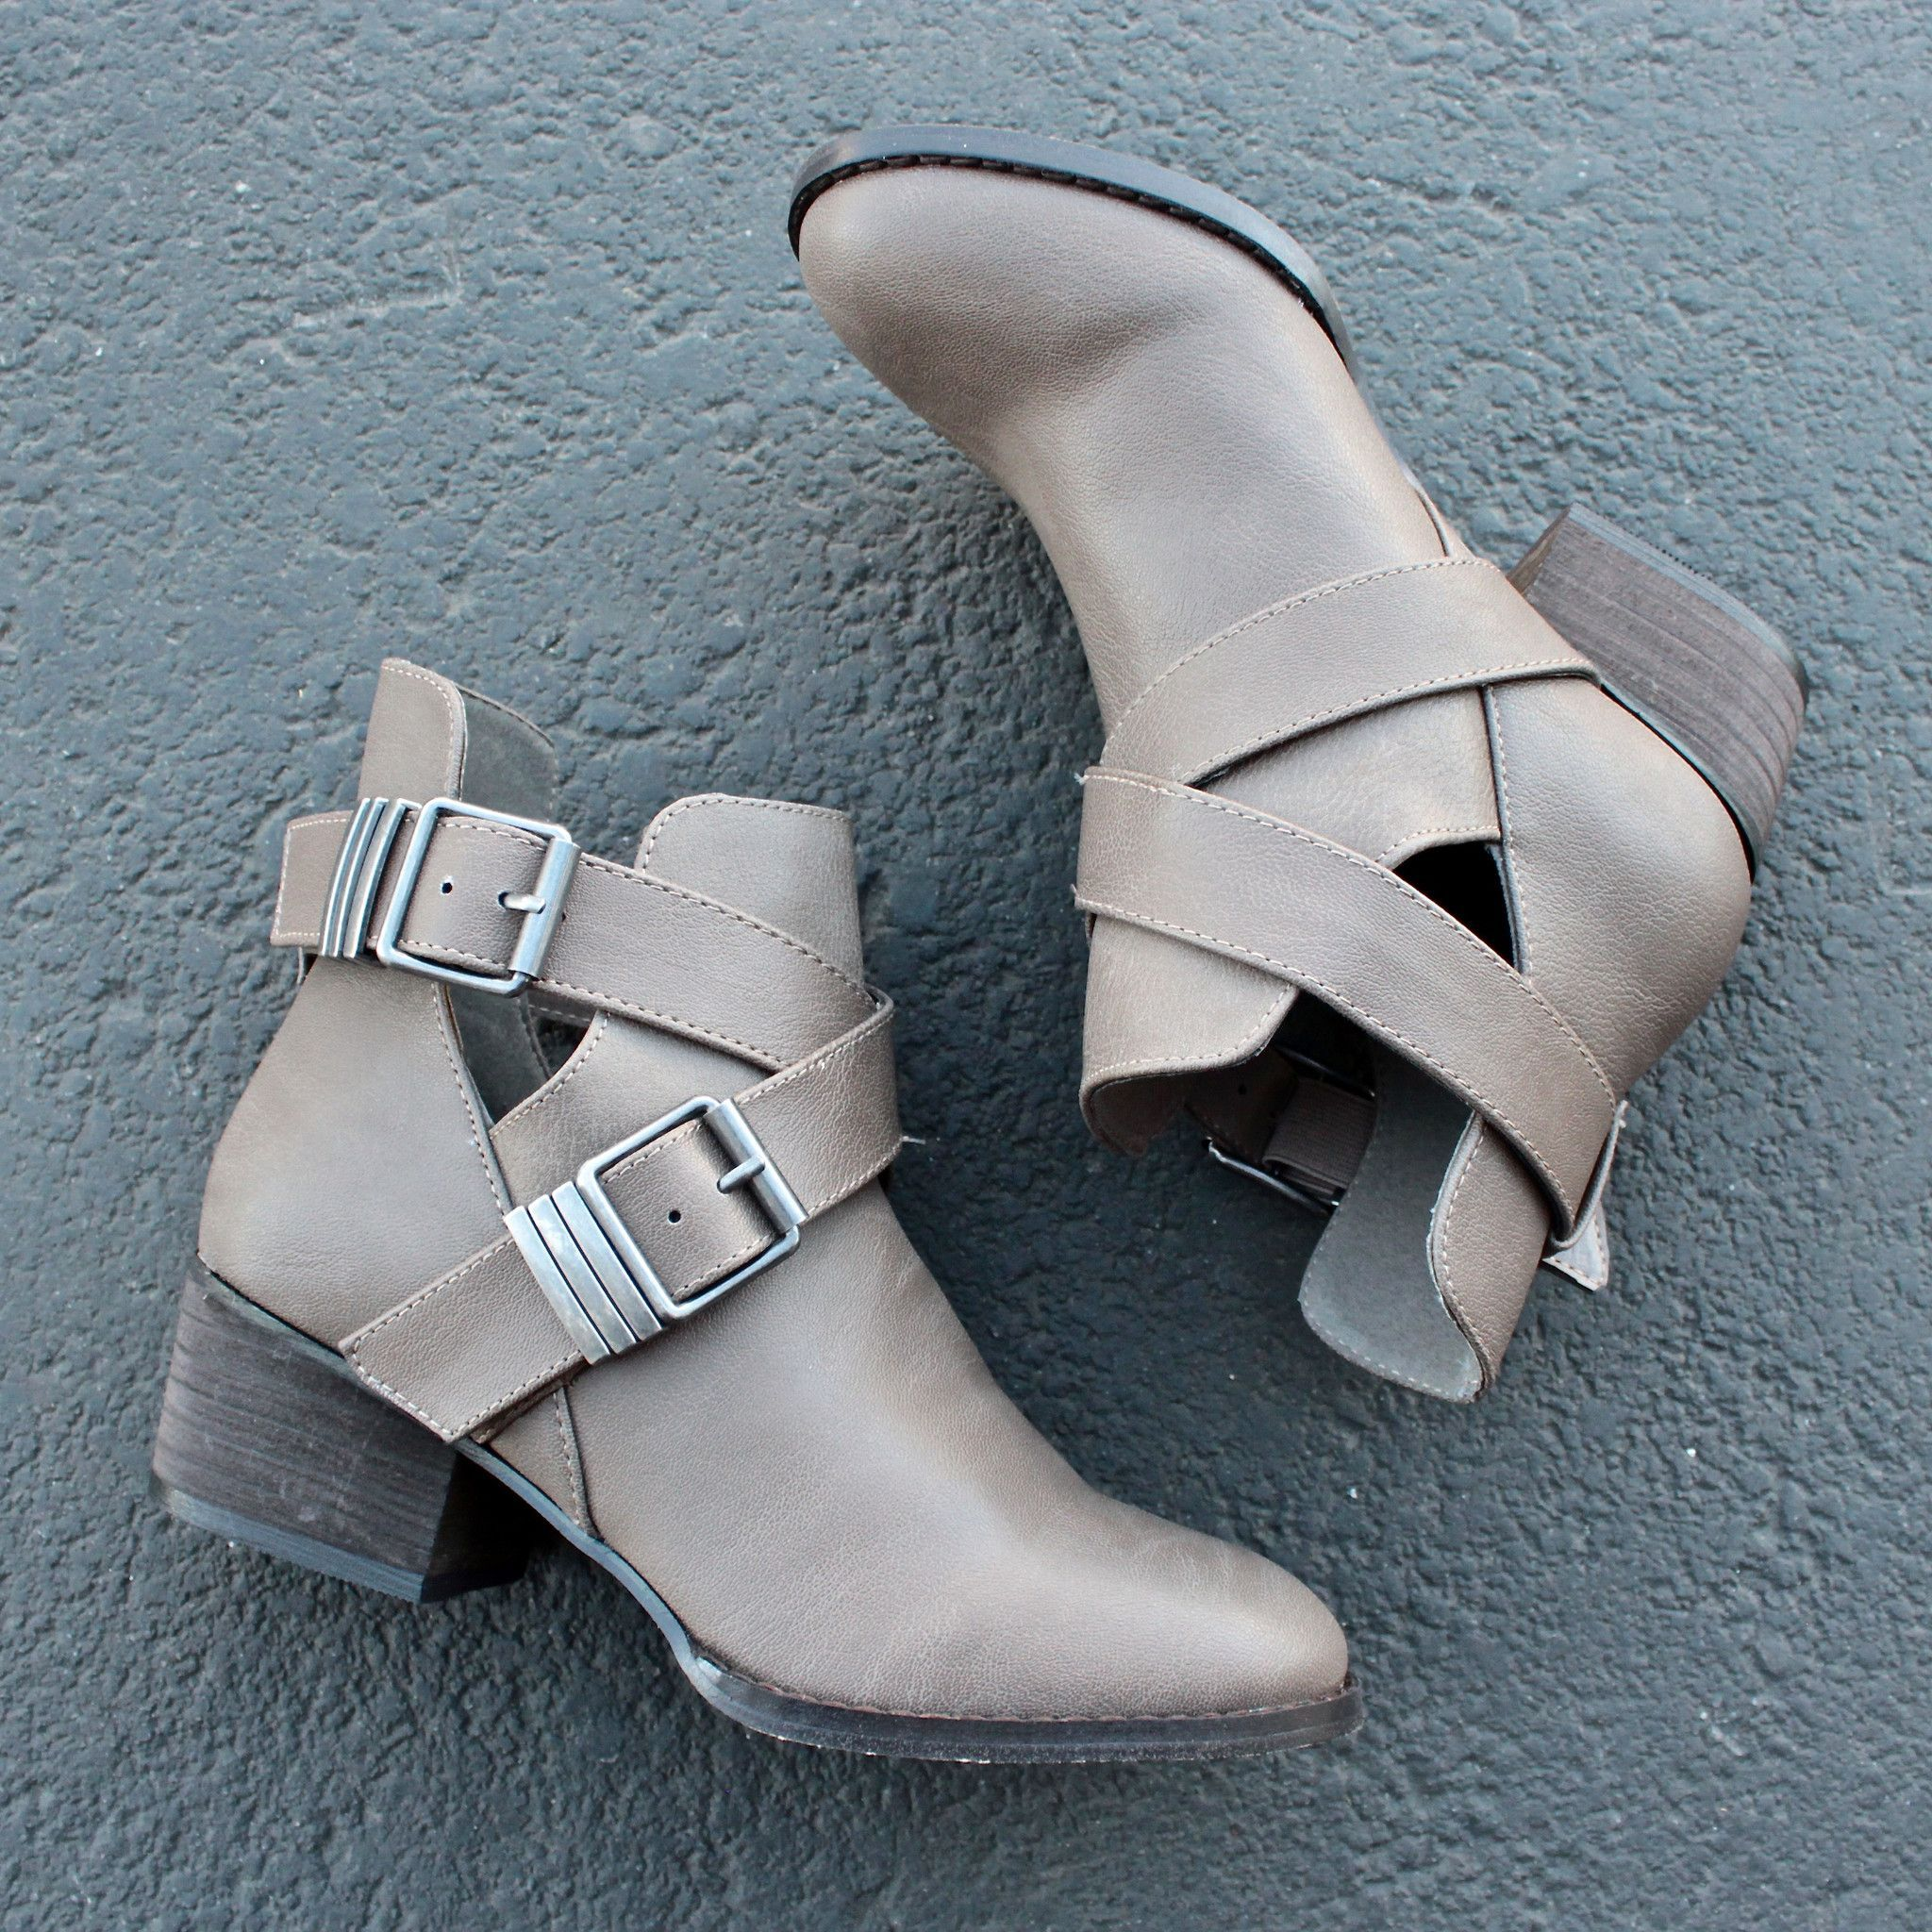 cute double buckled cut out ankle boot with stacked heels (more colors) - shophearts - 3